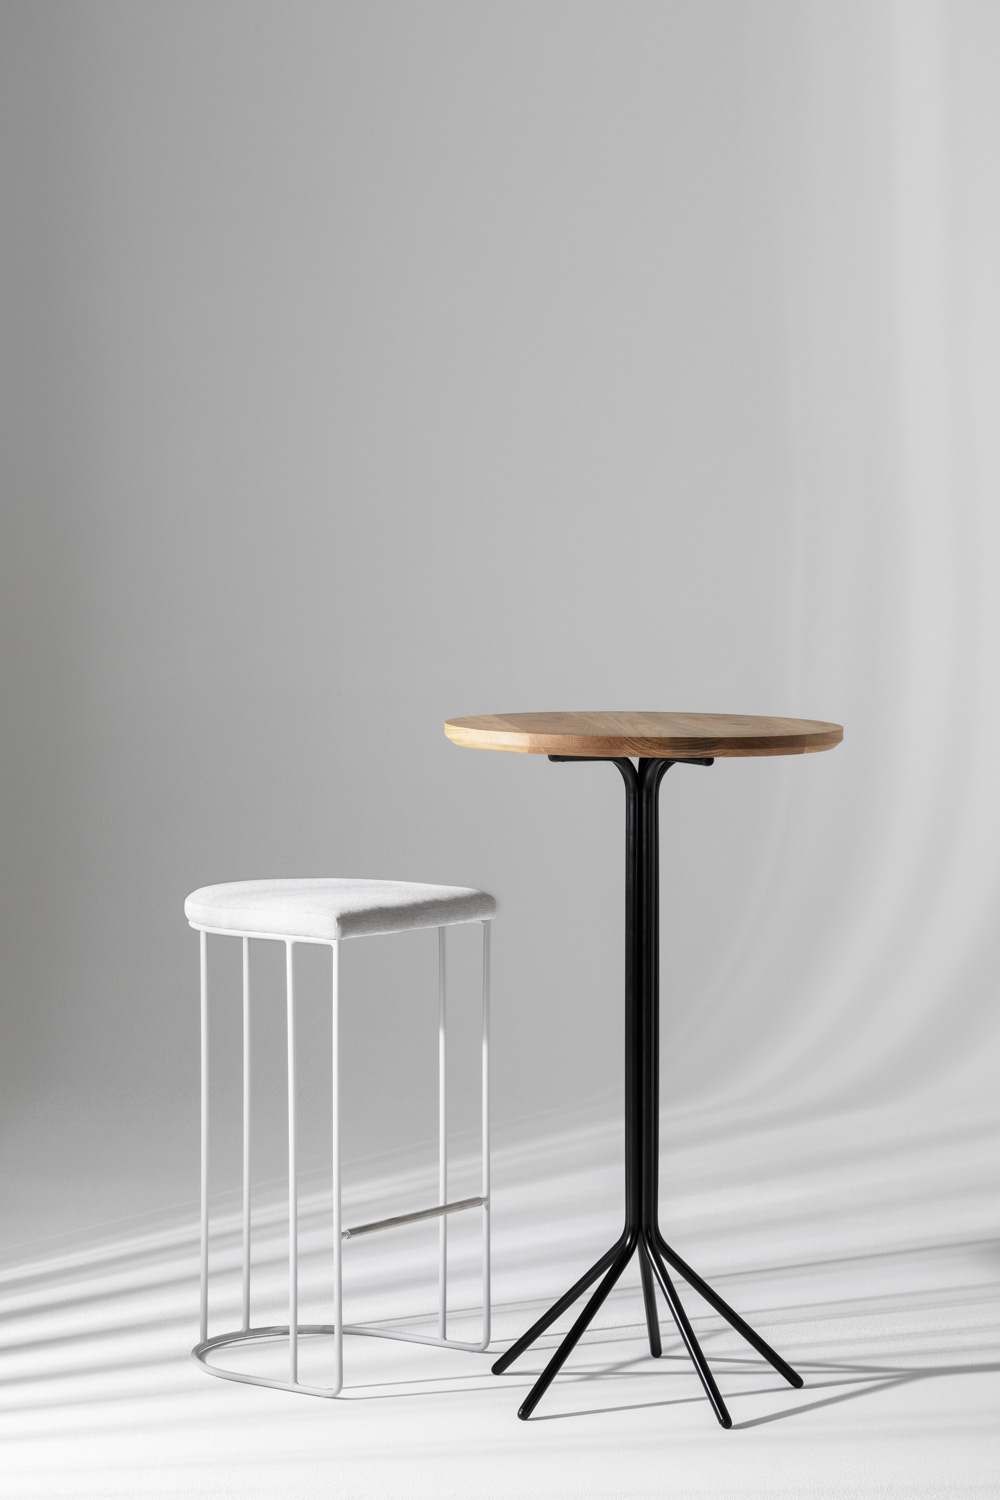 Etoile table - cafe or bar height